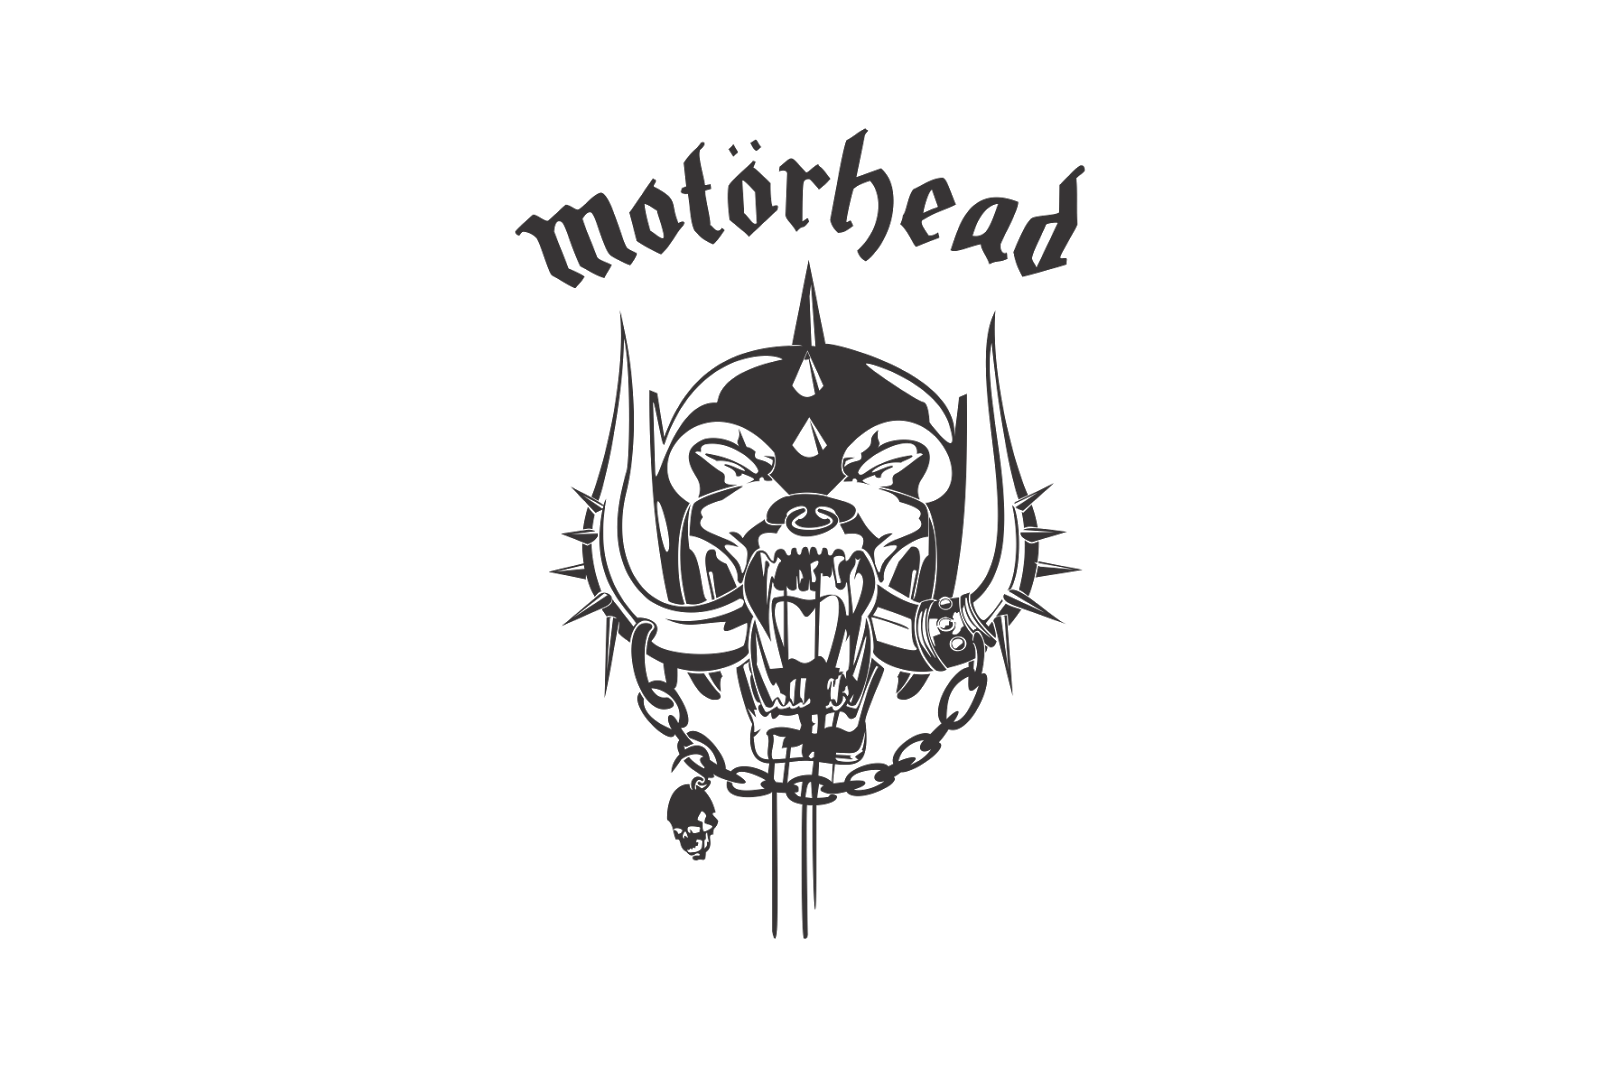 Black and white clipart high resolution motorhead graphic freeuse Motorhead Logos graphic freeuse